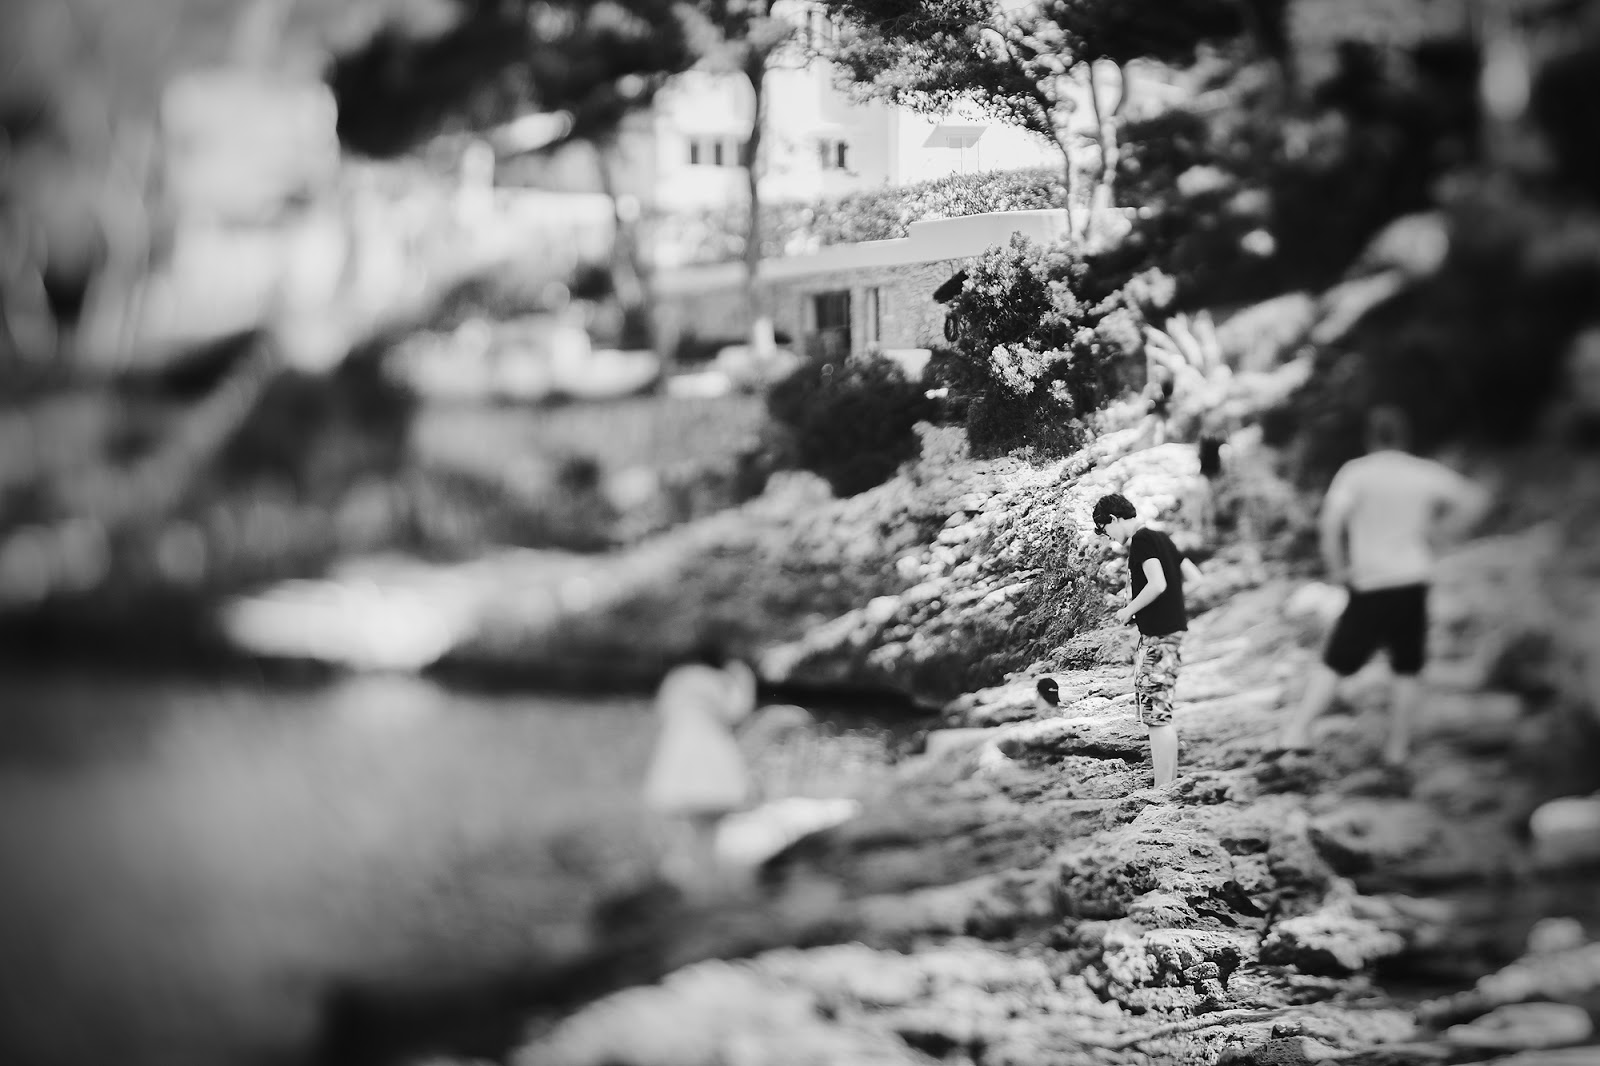 Fujifilm Xpro 2 image of Mallorca by Willie Kers Photography